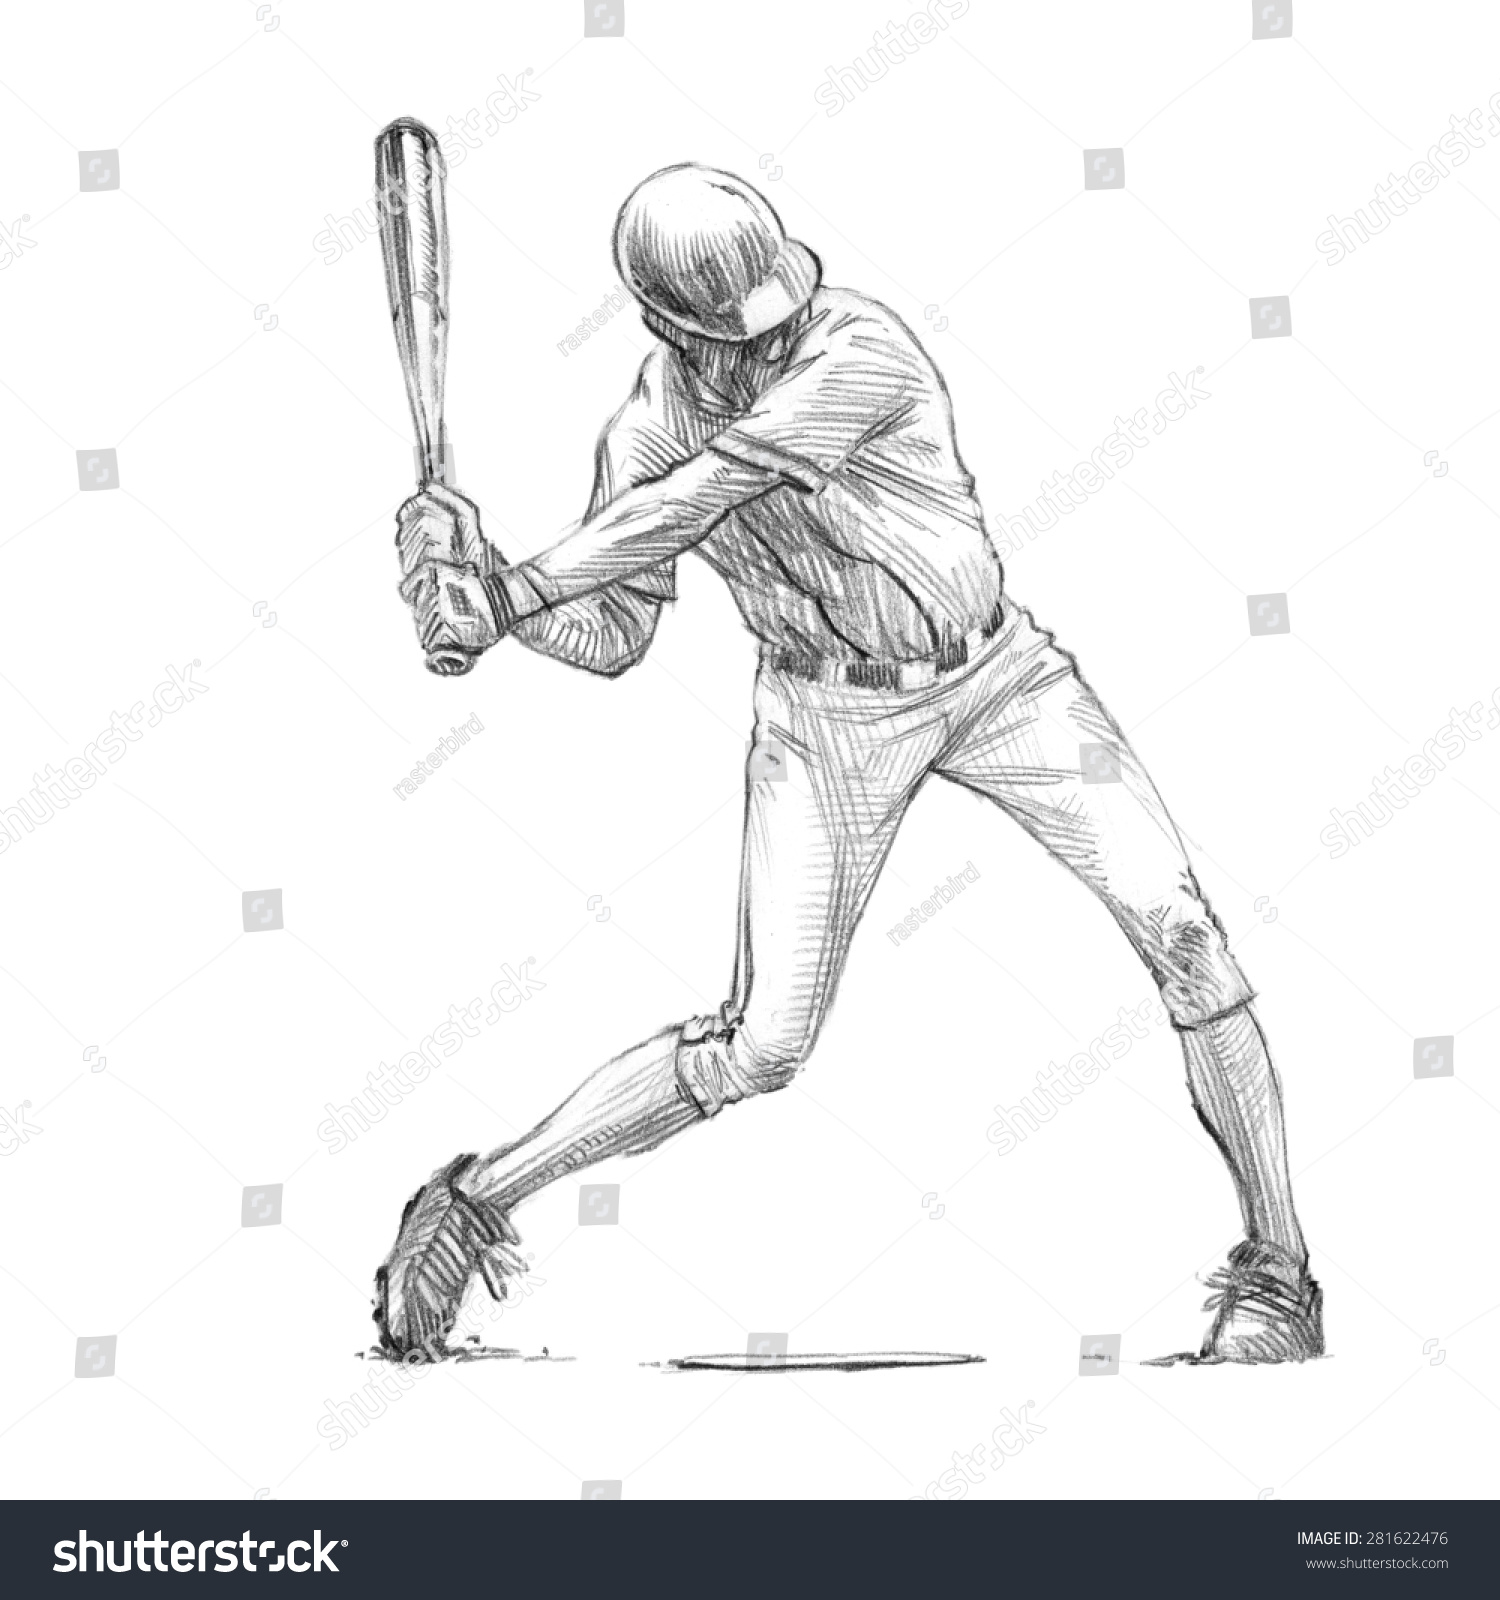 Uncategorized How To Draw A Baseball Pitcher sports series sketchy pencil drawing baseball stock illustration of a player batter high resolution scan